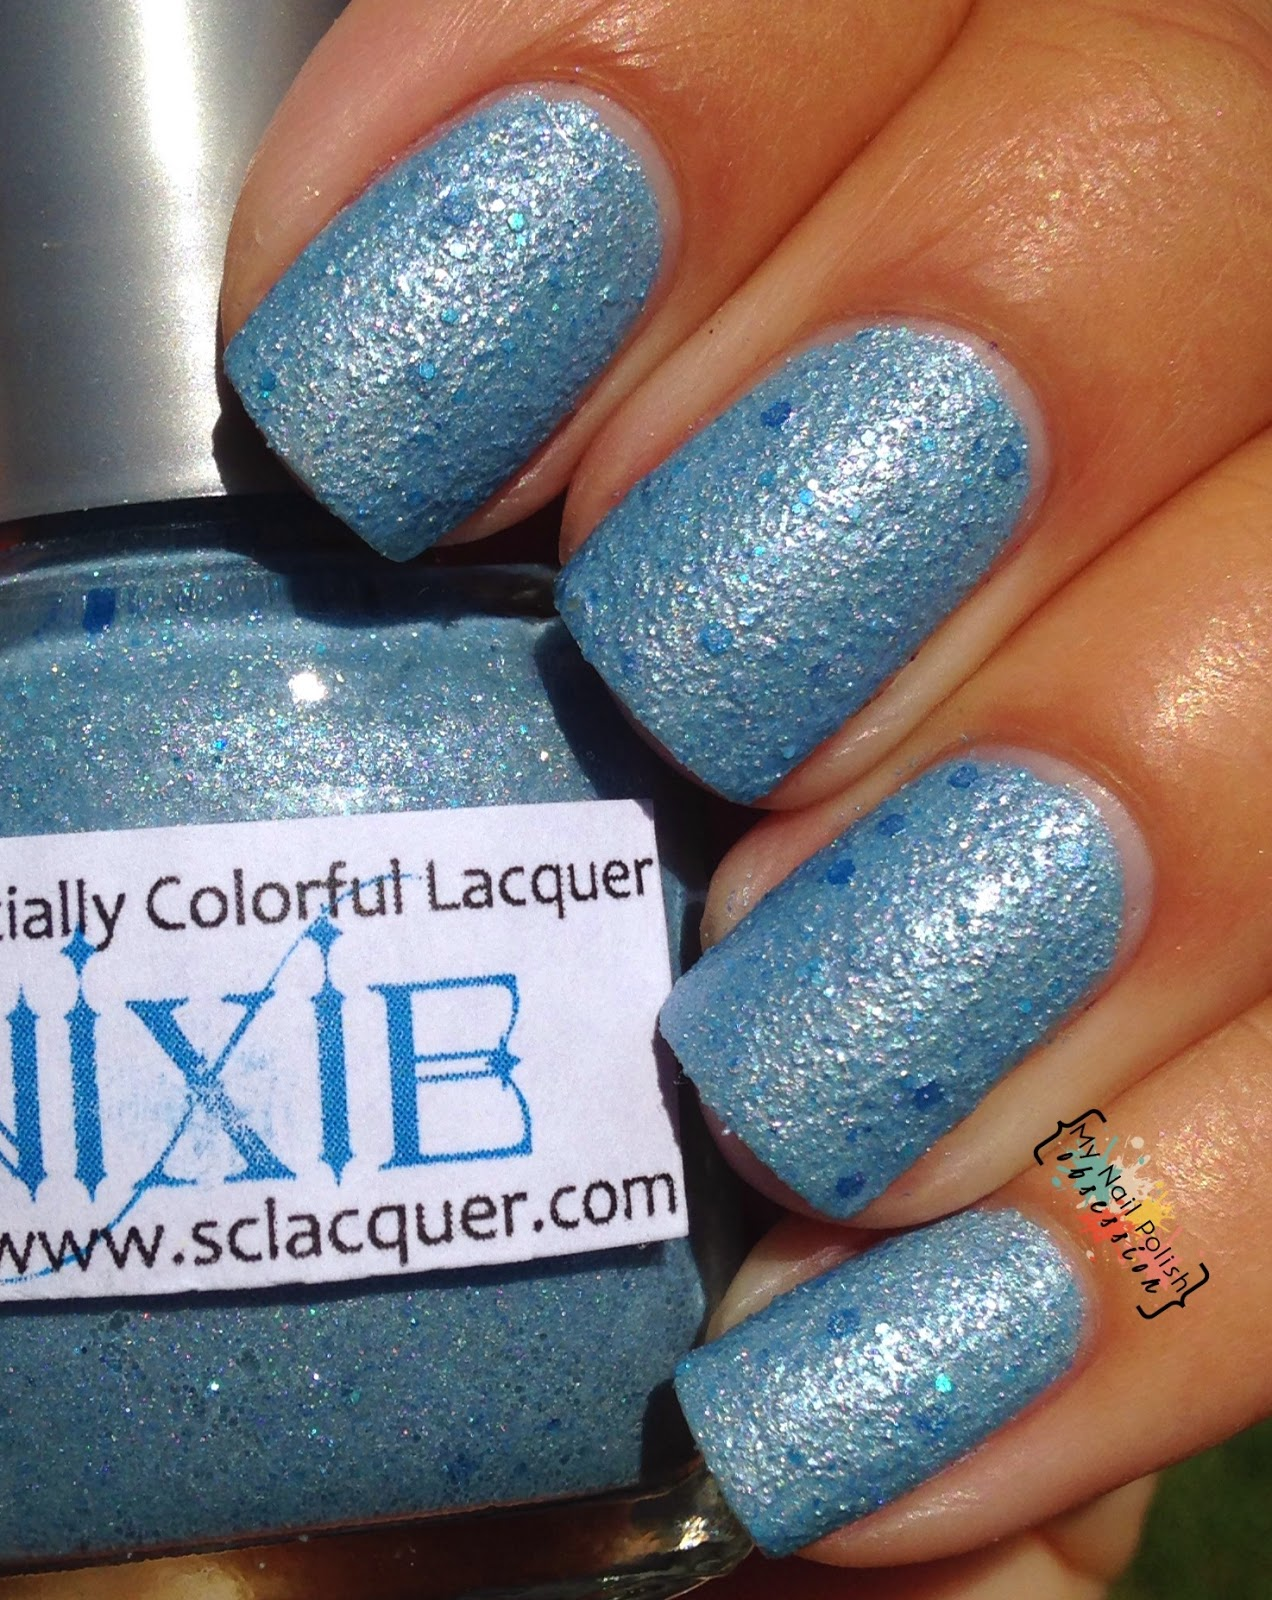 Superficially Colorful Lacquers Nixie